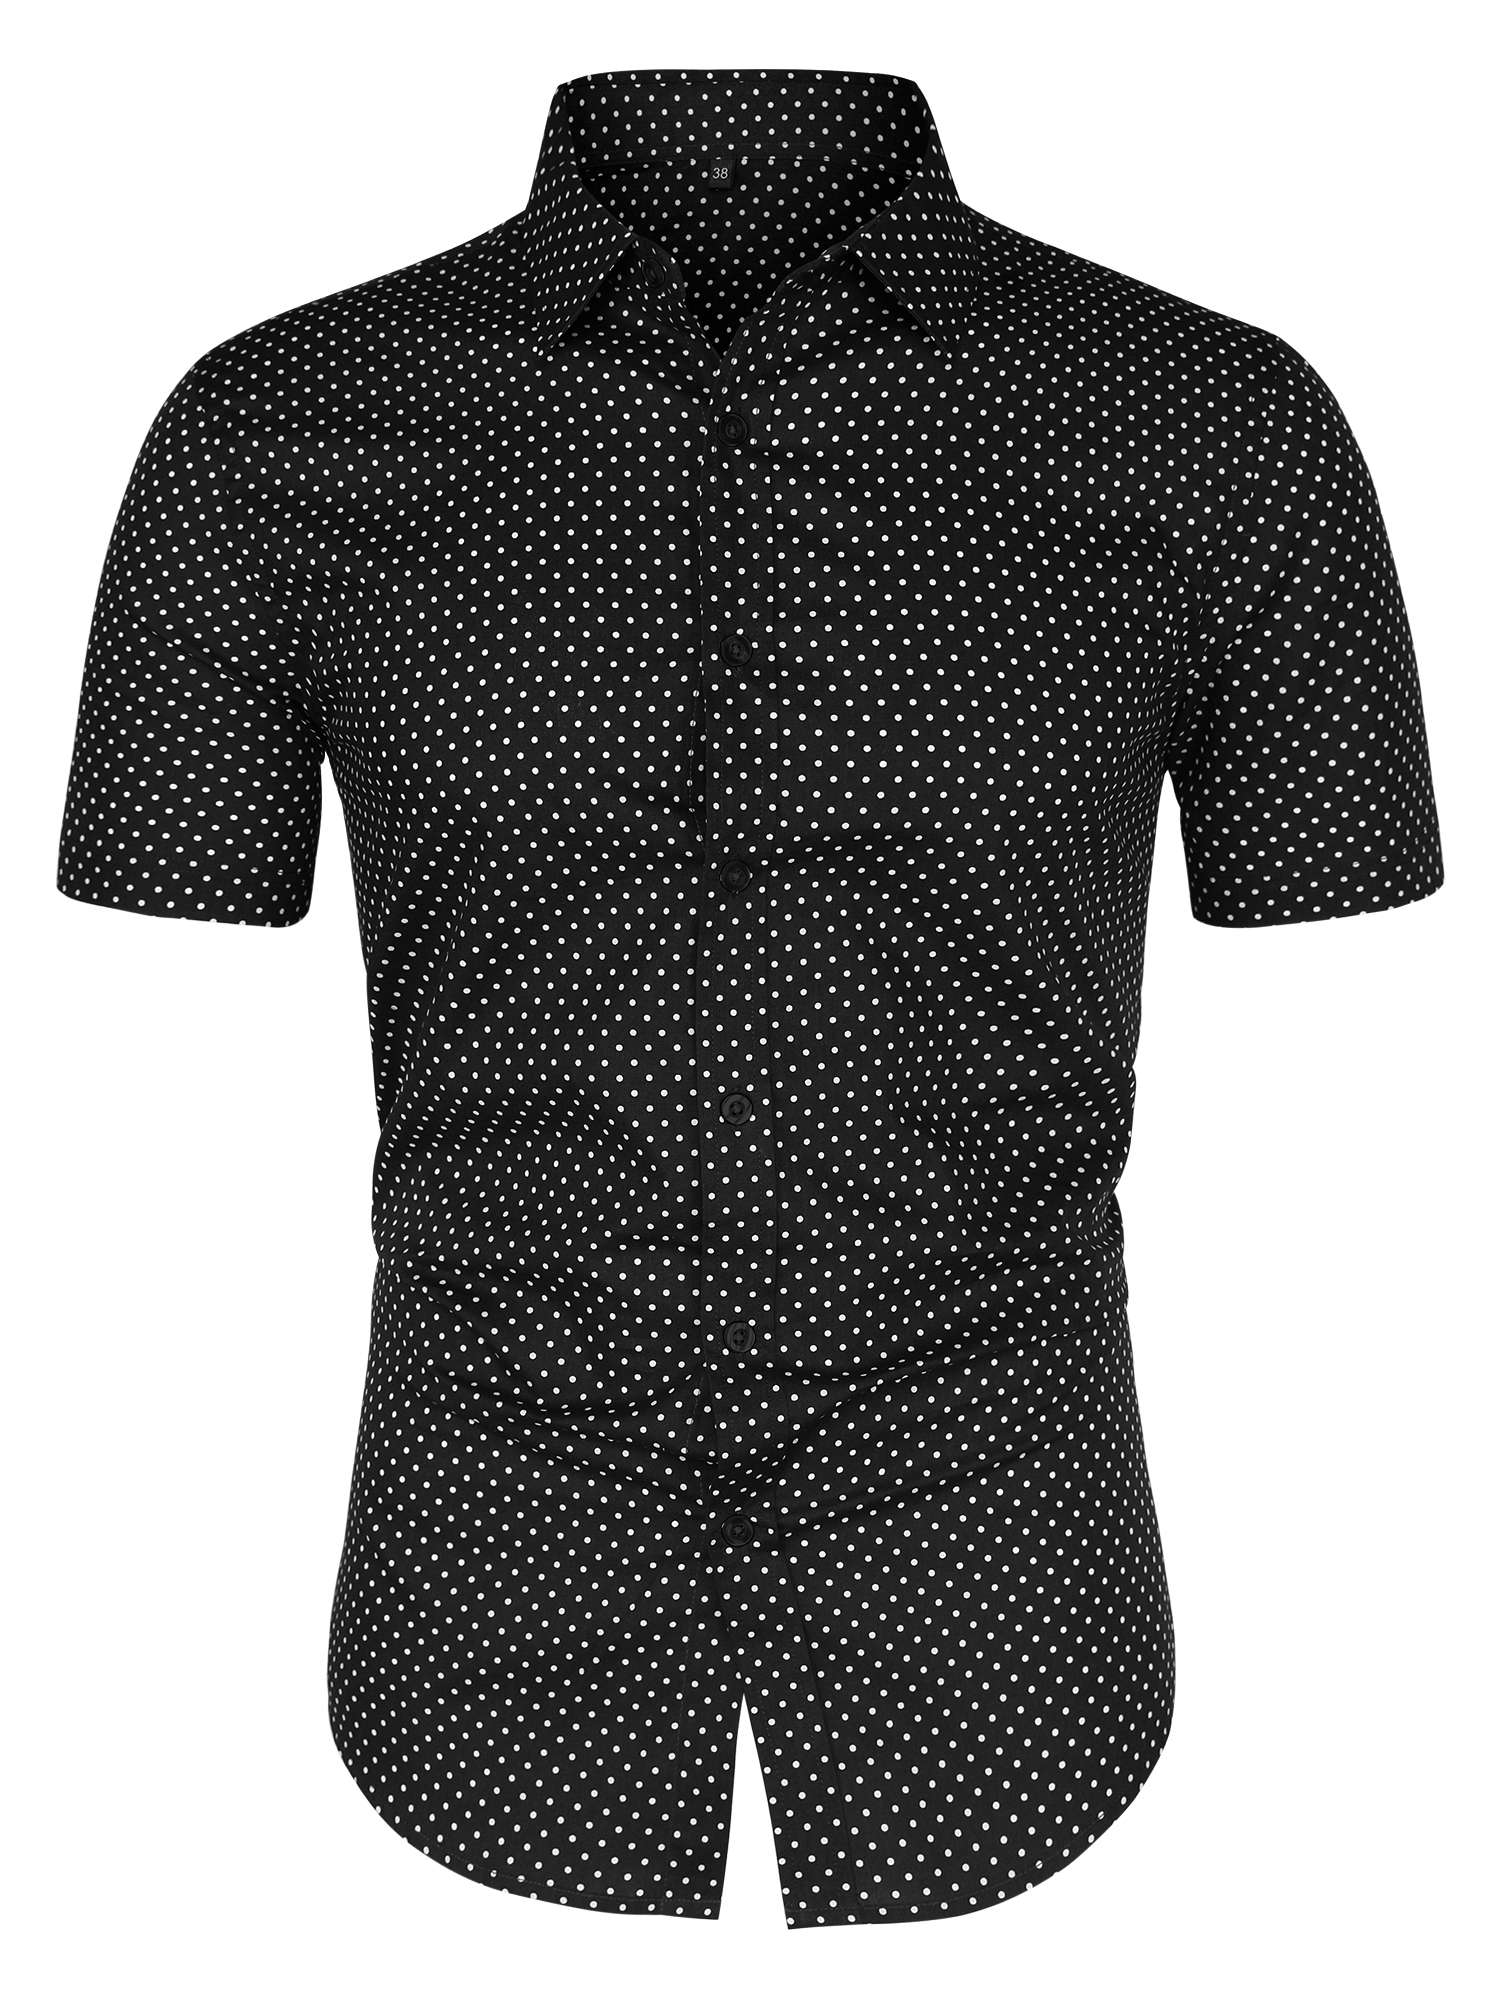 Men Short Sleeves Single Breasted Cotton Dots Shirt Black M